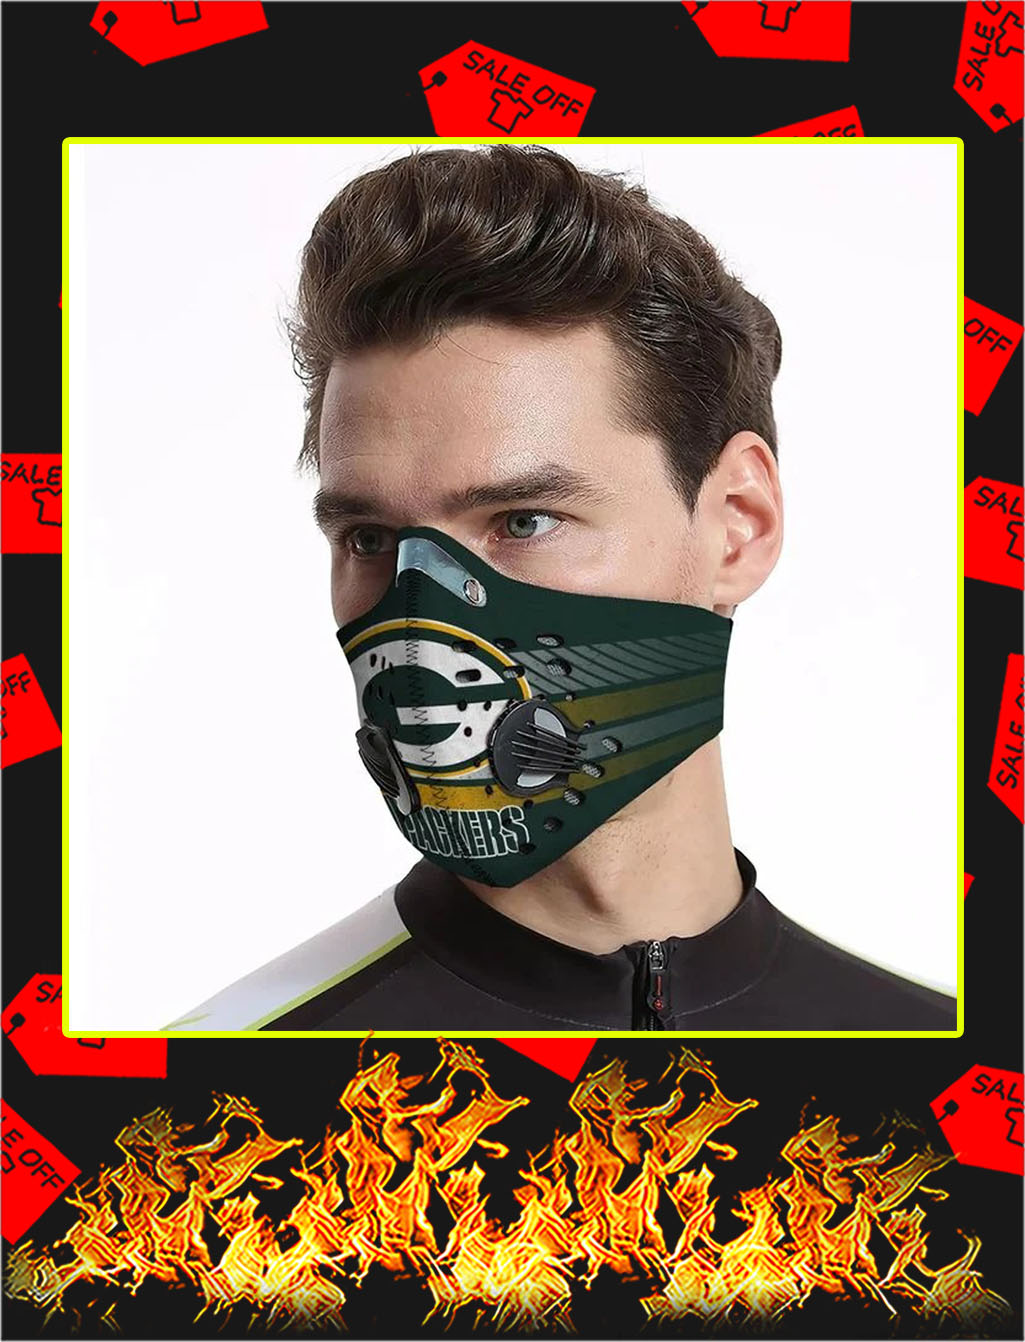 Green bay packers filter face mask- pic 1Green bay packers filter face mask- pic 1